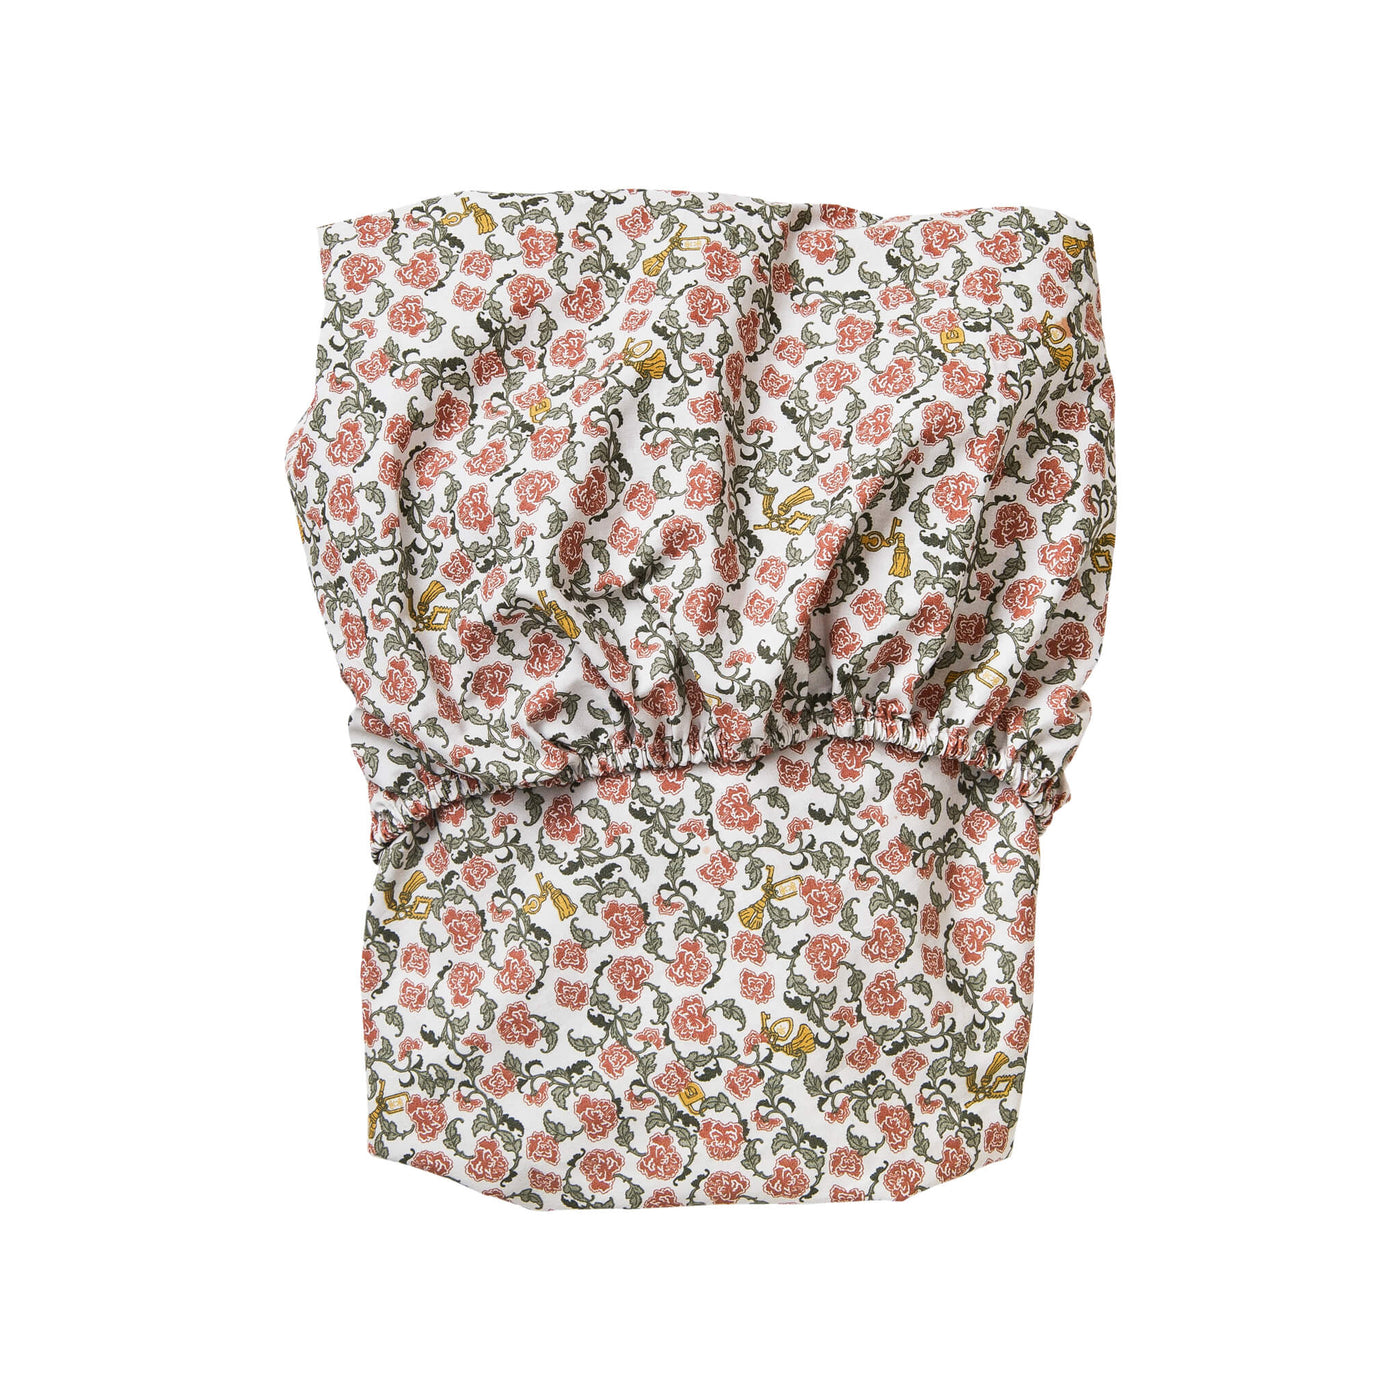 Fitted Sheet - Floral Vine